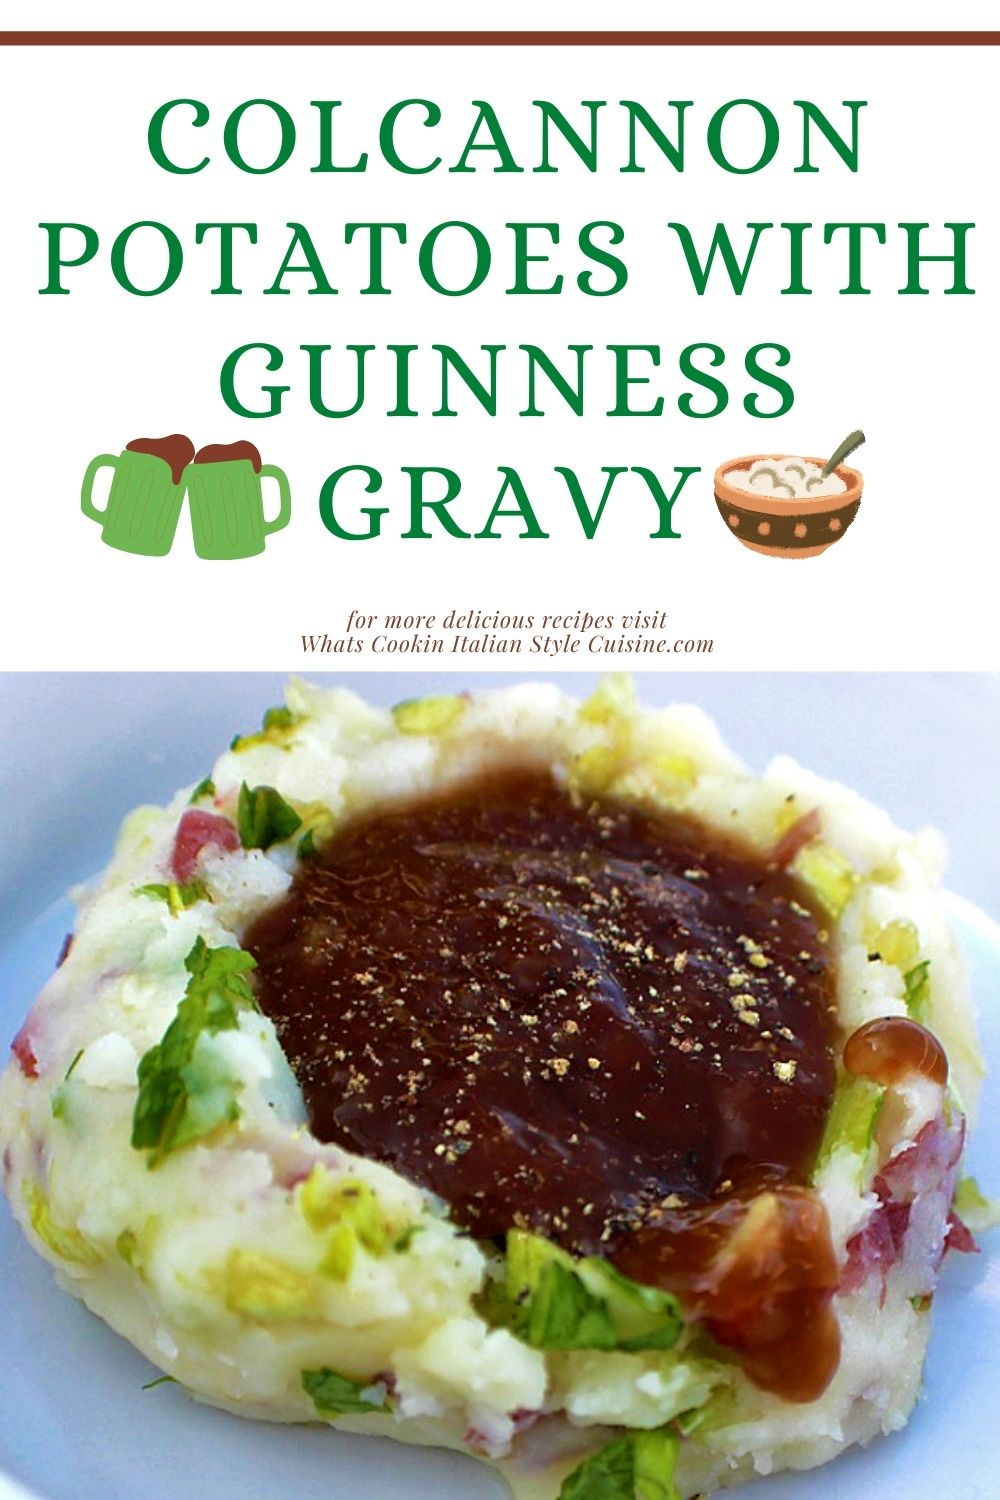 these are Irish potatoes with Guinness gravy